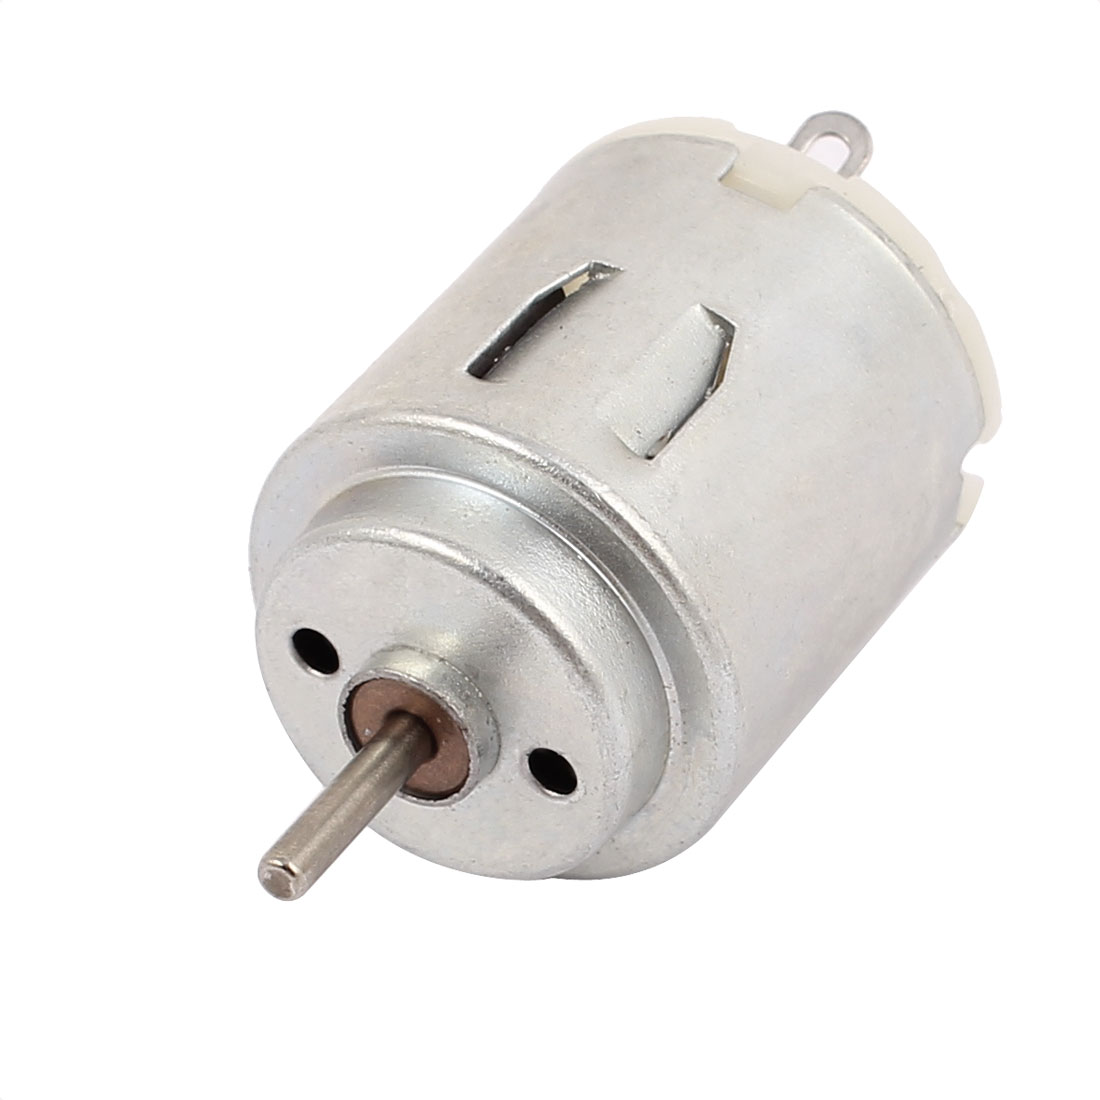 DC 3-4.5V 3500RPM Large Torque Cylindrical Mini DC Motor for Electric Toy